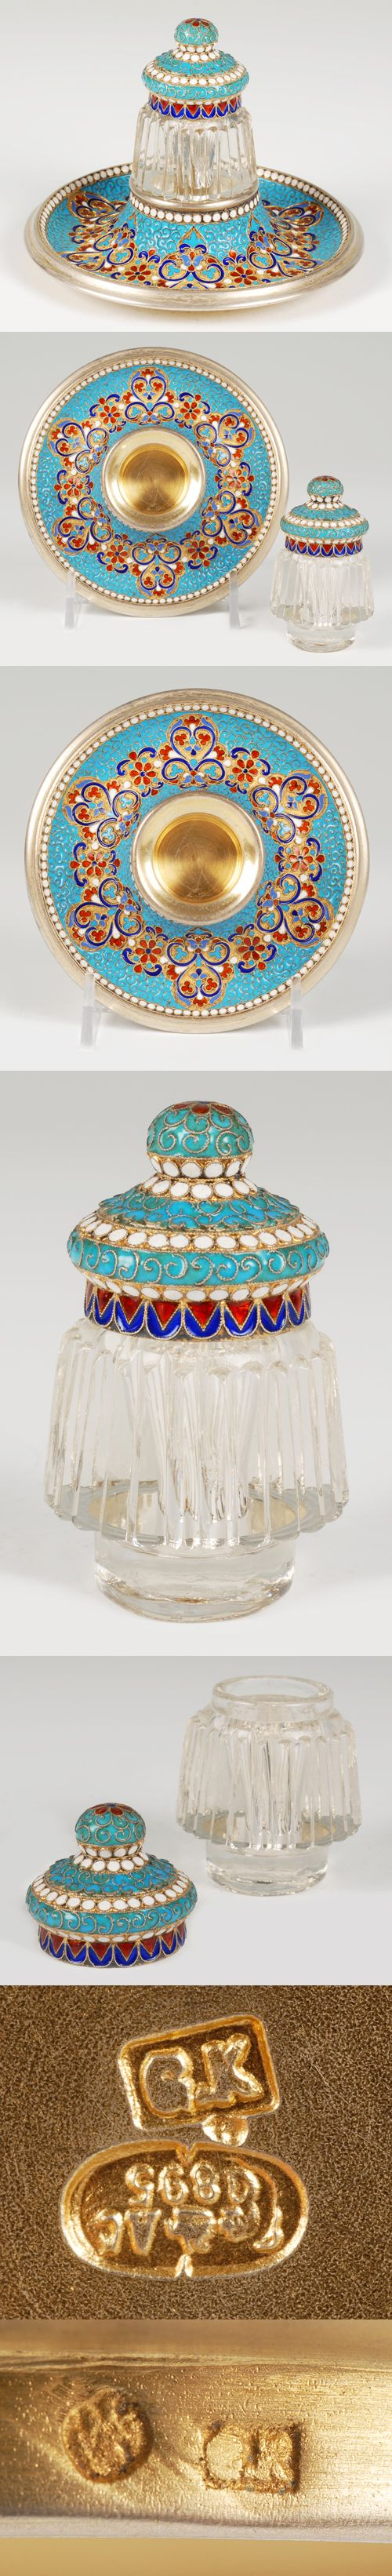 A Russian glass, silver gilt and cloisonne enamel inkwell made by Gustav Klingert, Moscow, circa 1895. Of tapering form, the glass inkwell's lid decorated with scrolling filigree wires against a turquoise ground bordered by white enamel beads, the stand similarly decorated.